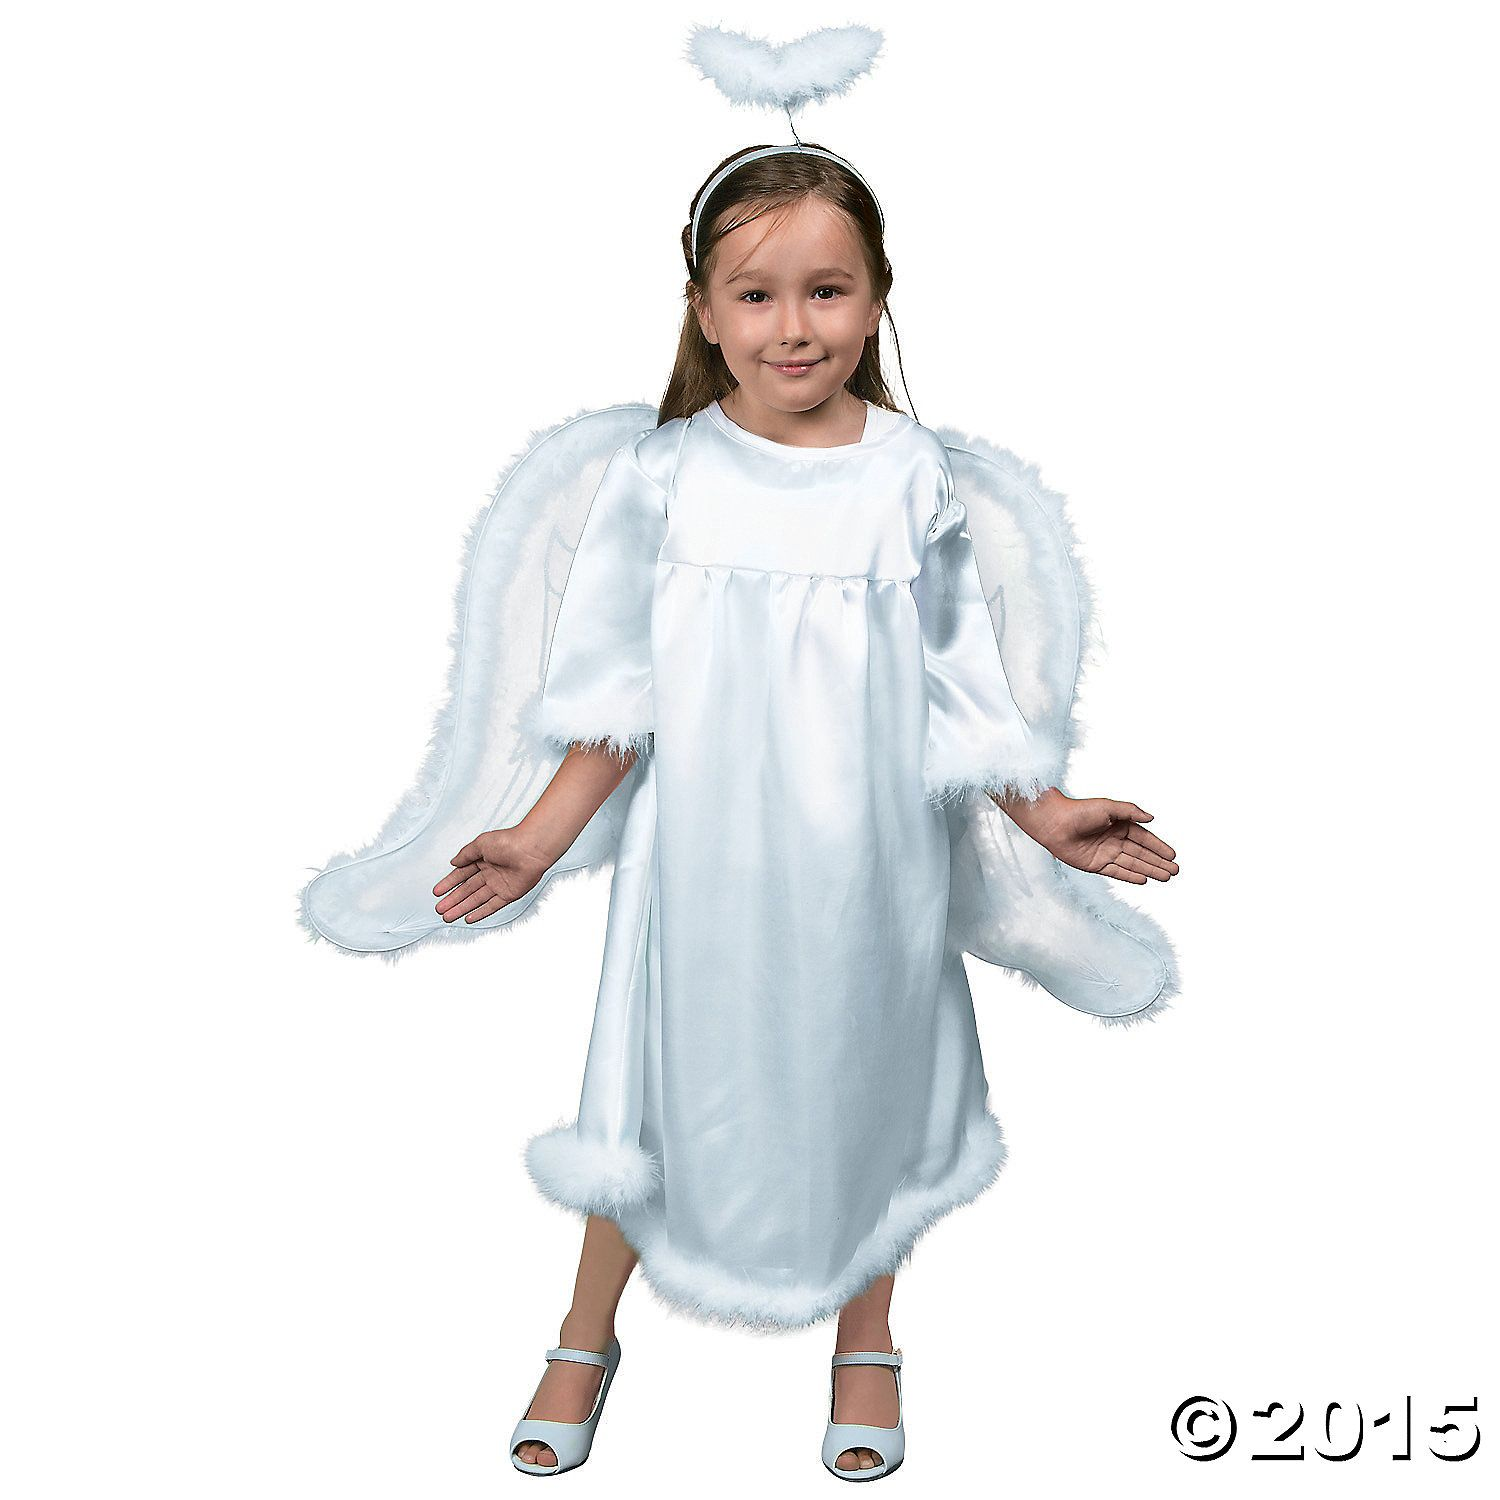 Toddler Girlu0027s Angel Costume  sc 1 st  Pinterest : play costumes for toddlers  - Germanpascual.Com